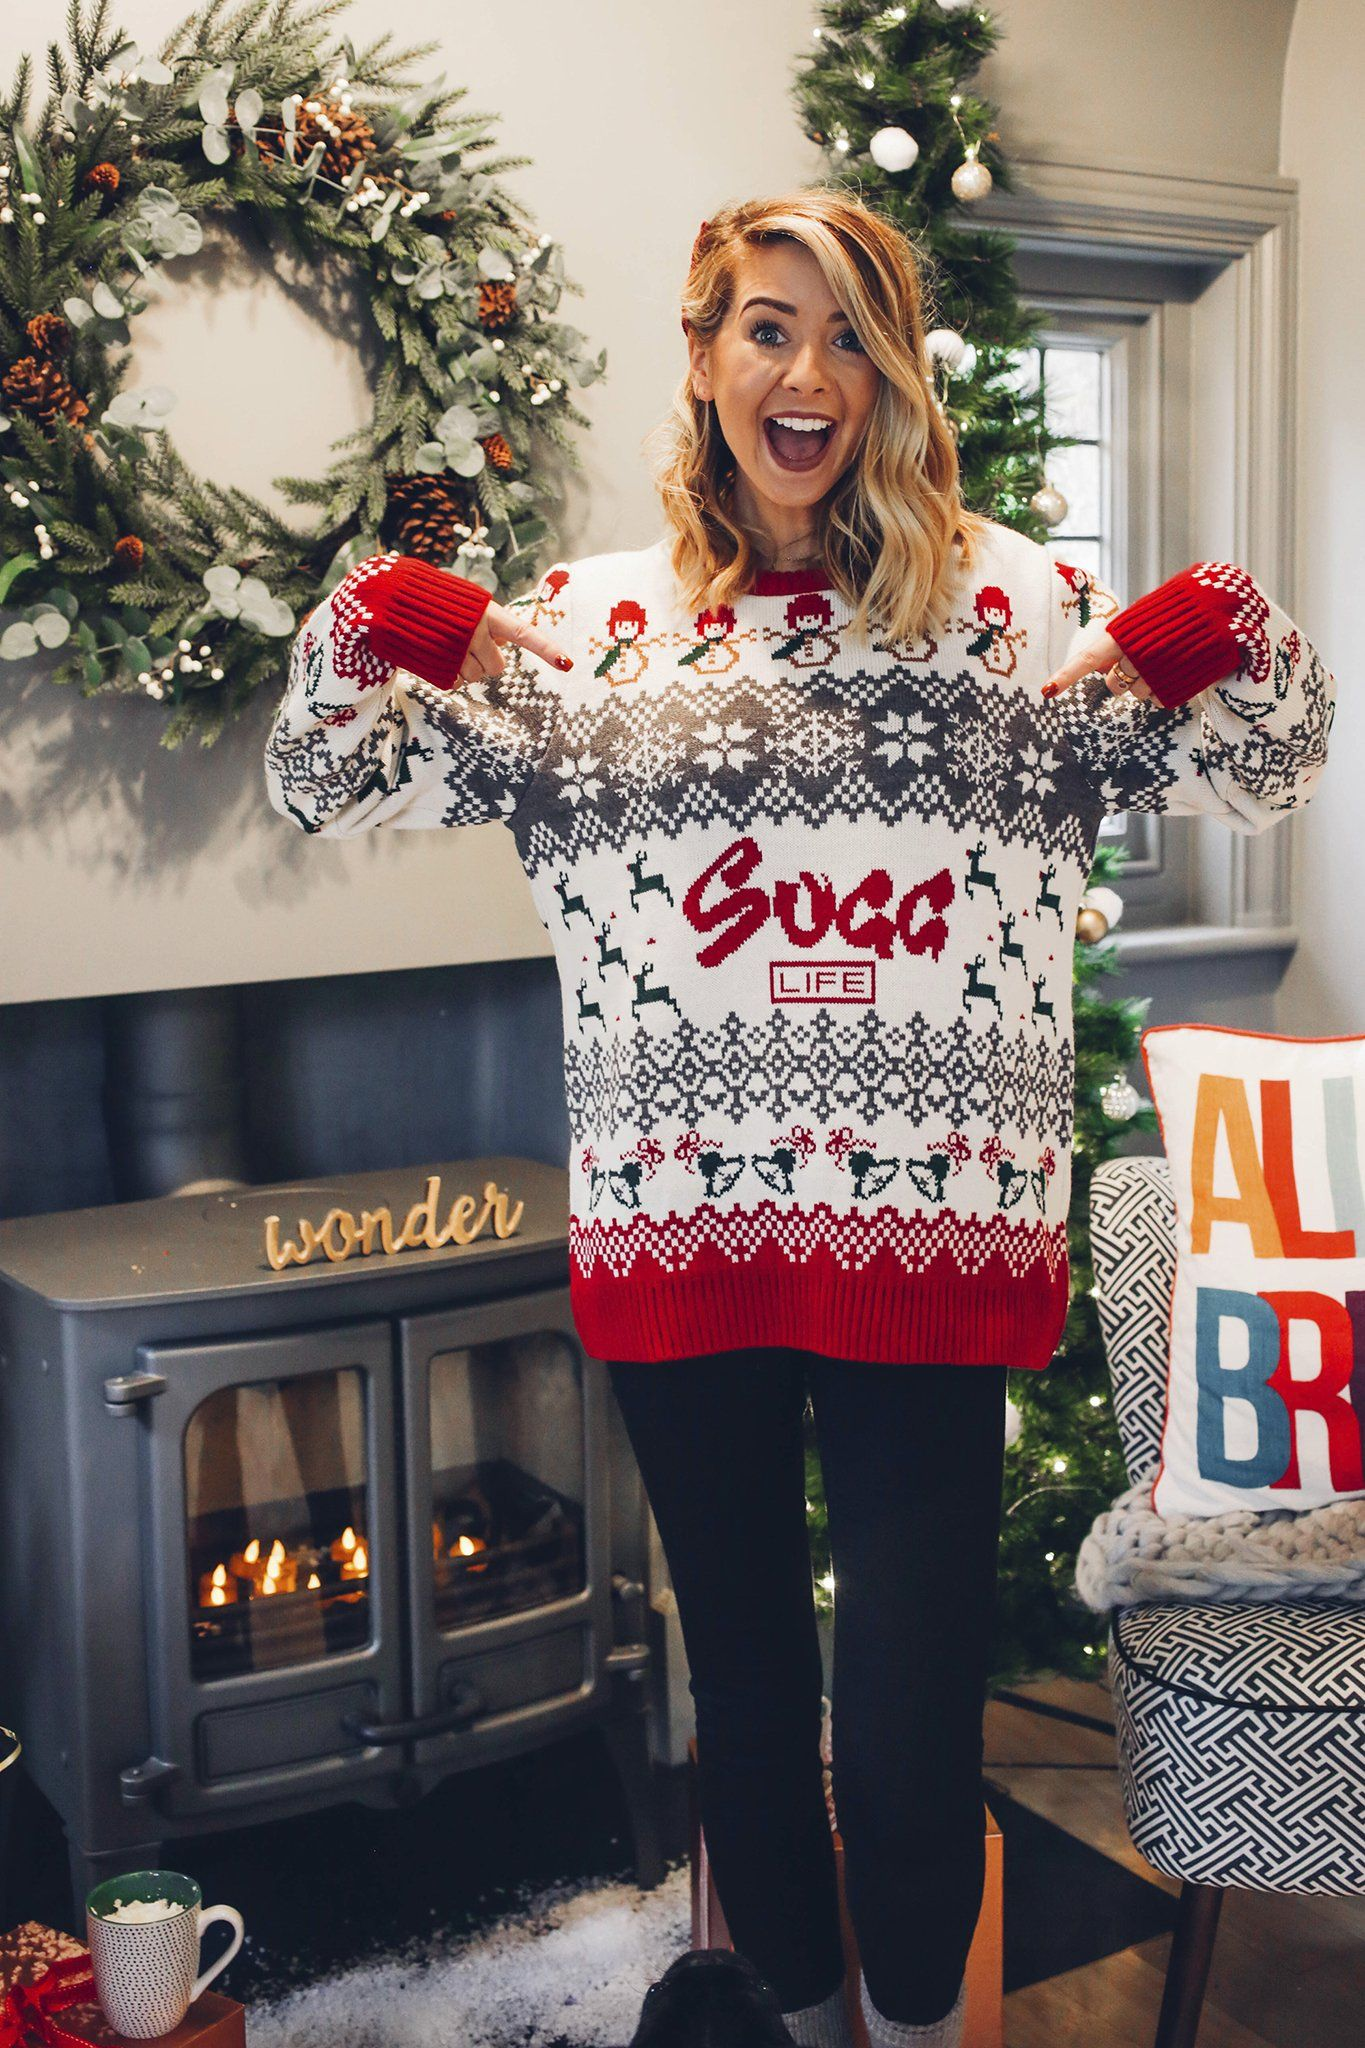 Christmas Jumper | Wishlist in 2018 | Pinterest | Sugg life, Zoella ...